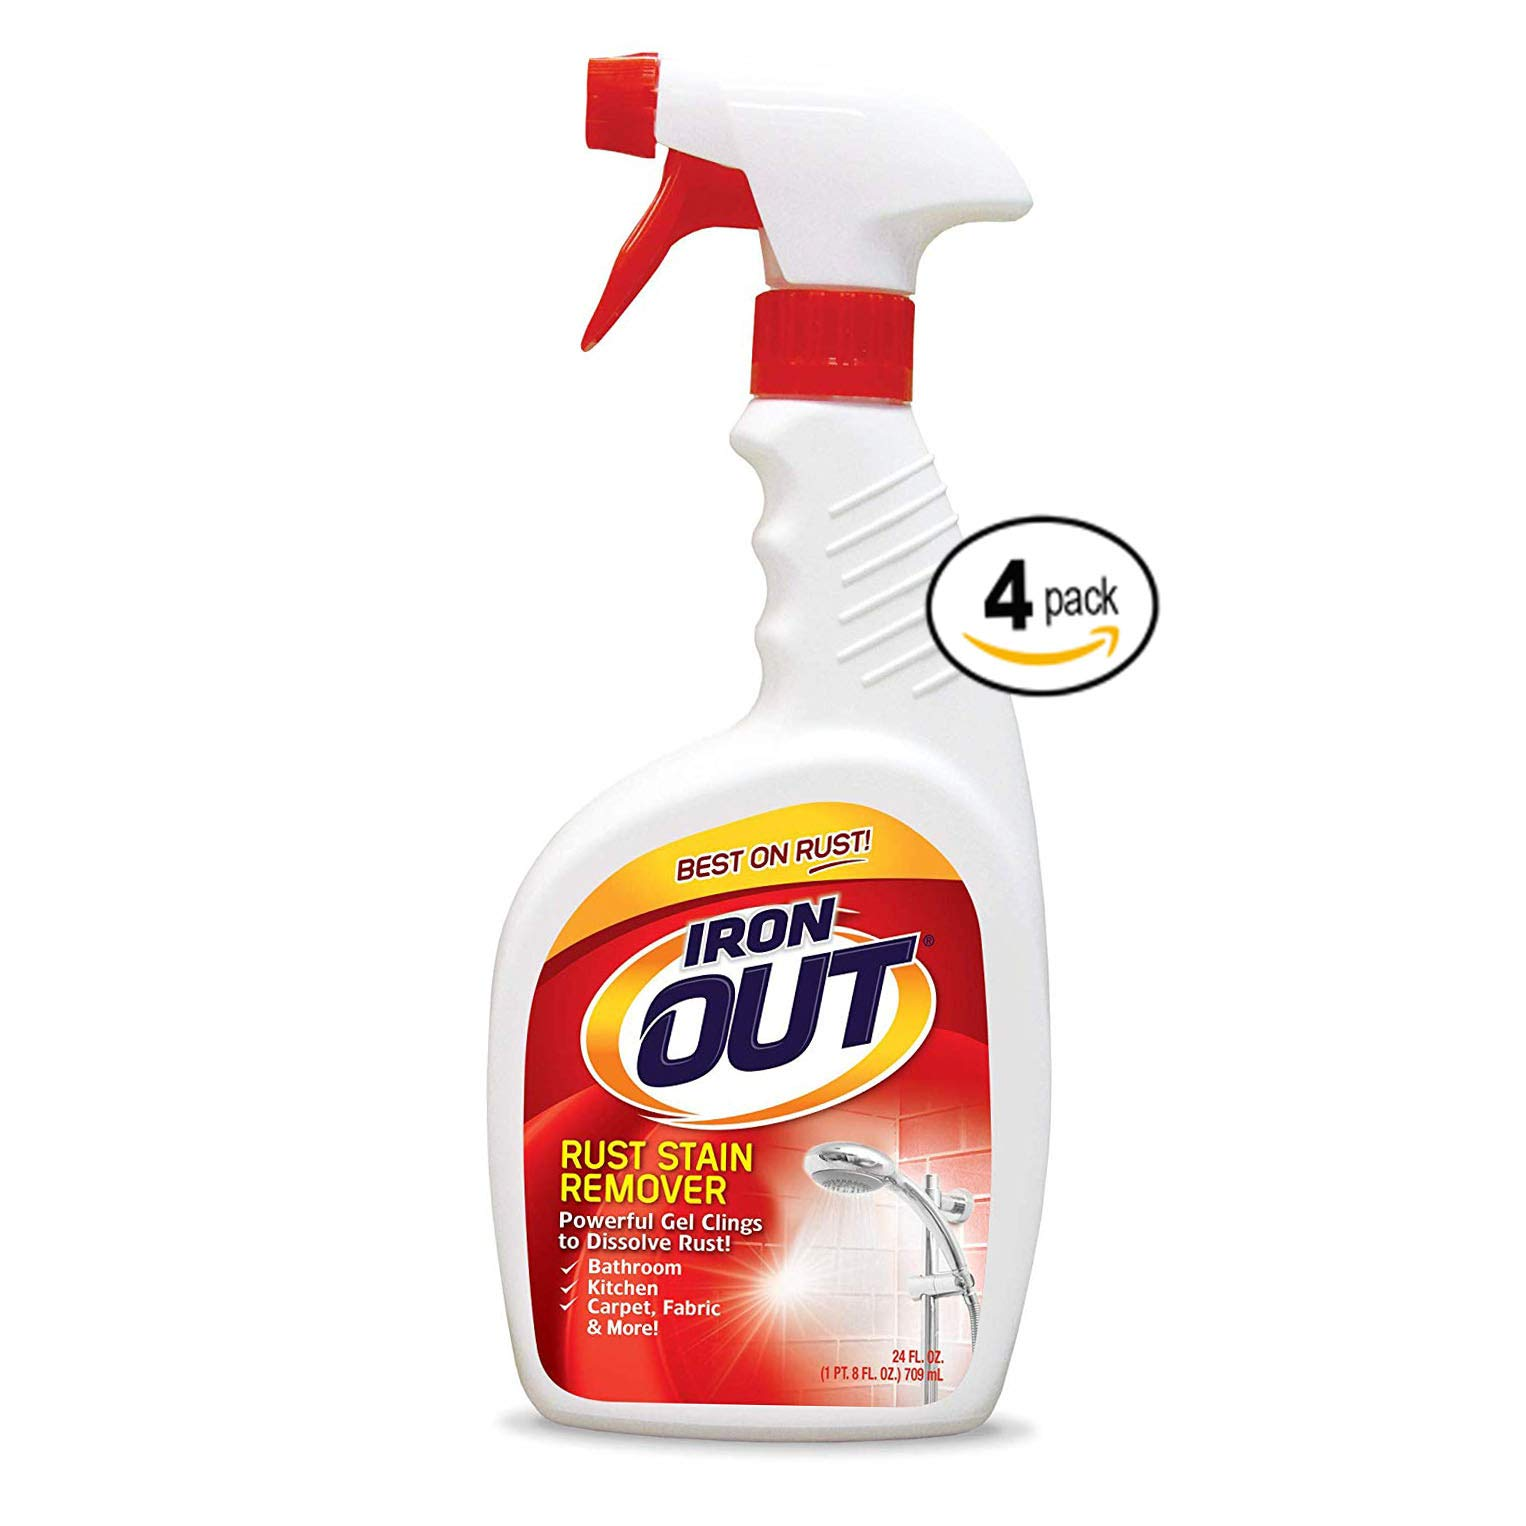 Iron OUT Rust Stain Remover Spray Gel, 24 Fl. Oz. Bottle,4 Count